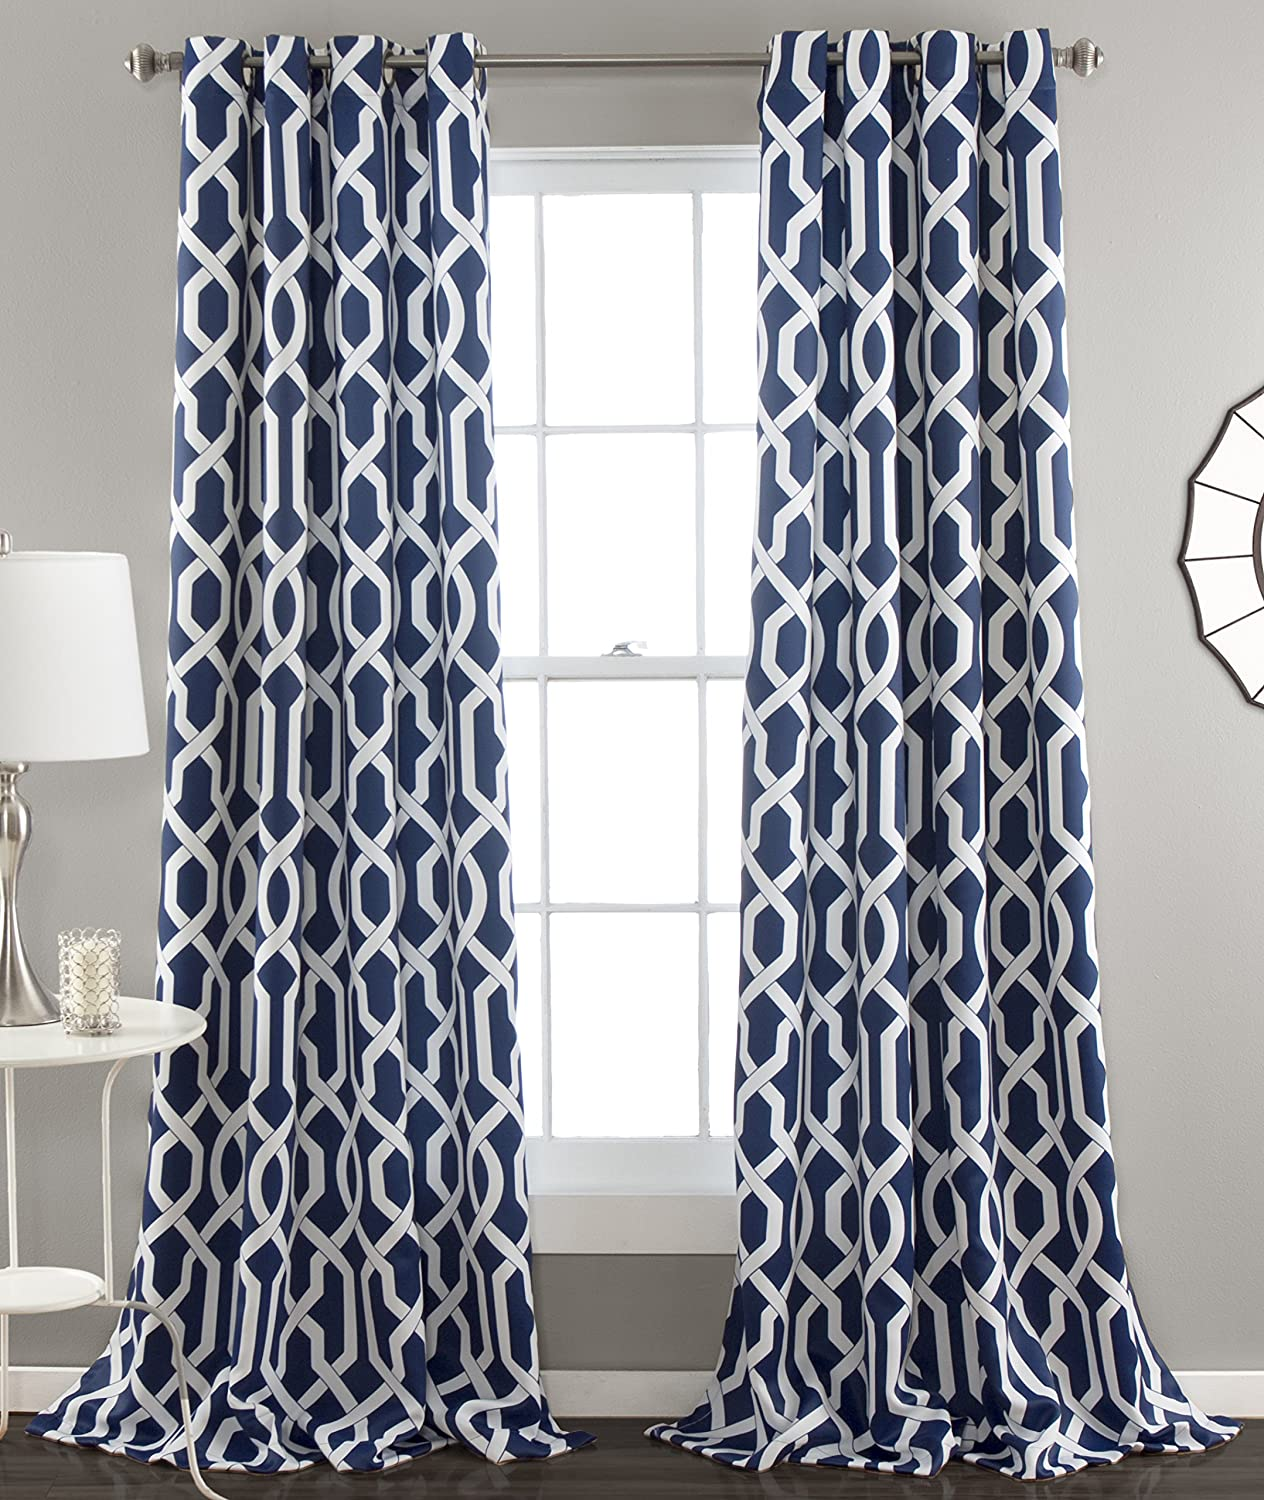 "Lush Decor Edward Trellis Darkening Window Curtains Panel Set for Living, Dining Room, Bedroom (Pair), 84"" L, Navy"